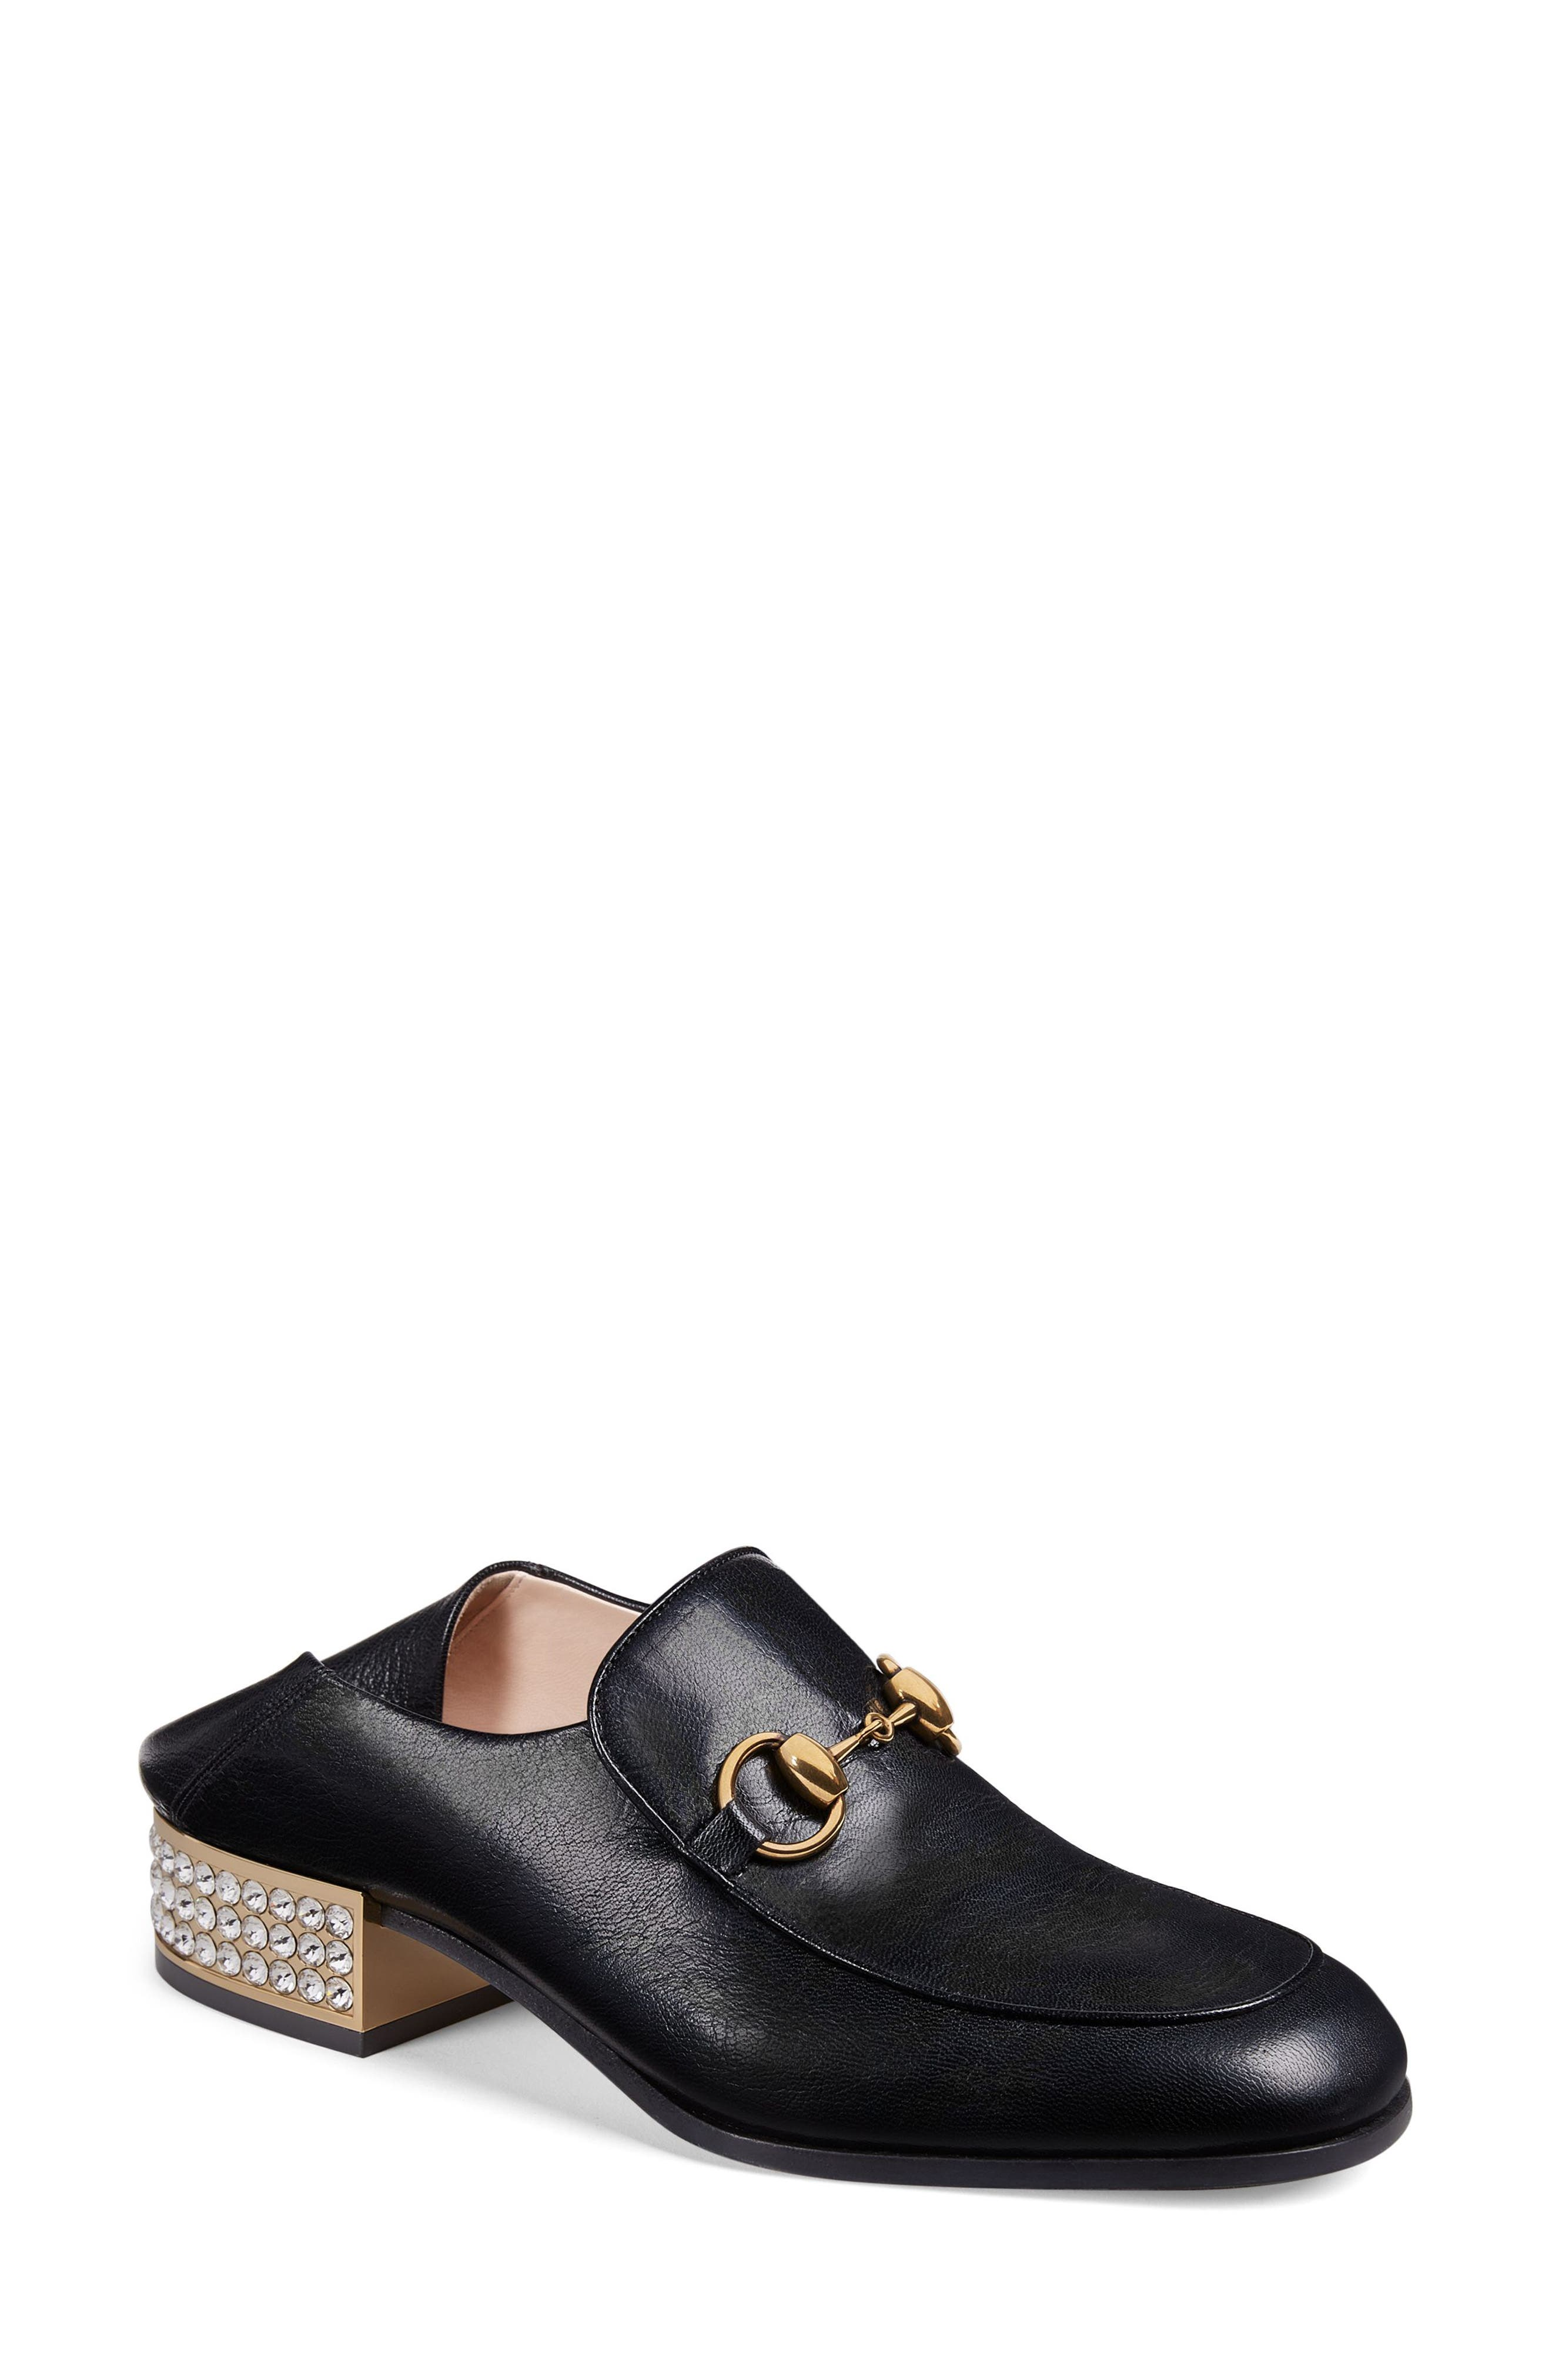 Mister Crystal Convertible Loafer,                         Main,                         color, Black